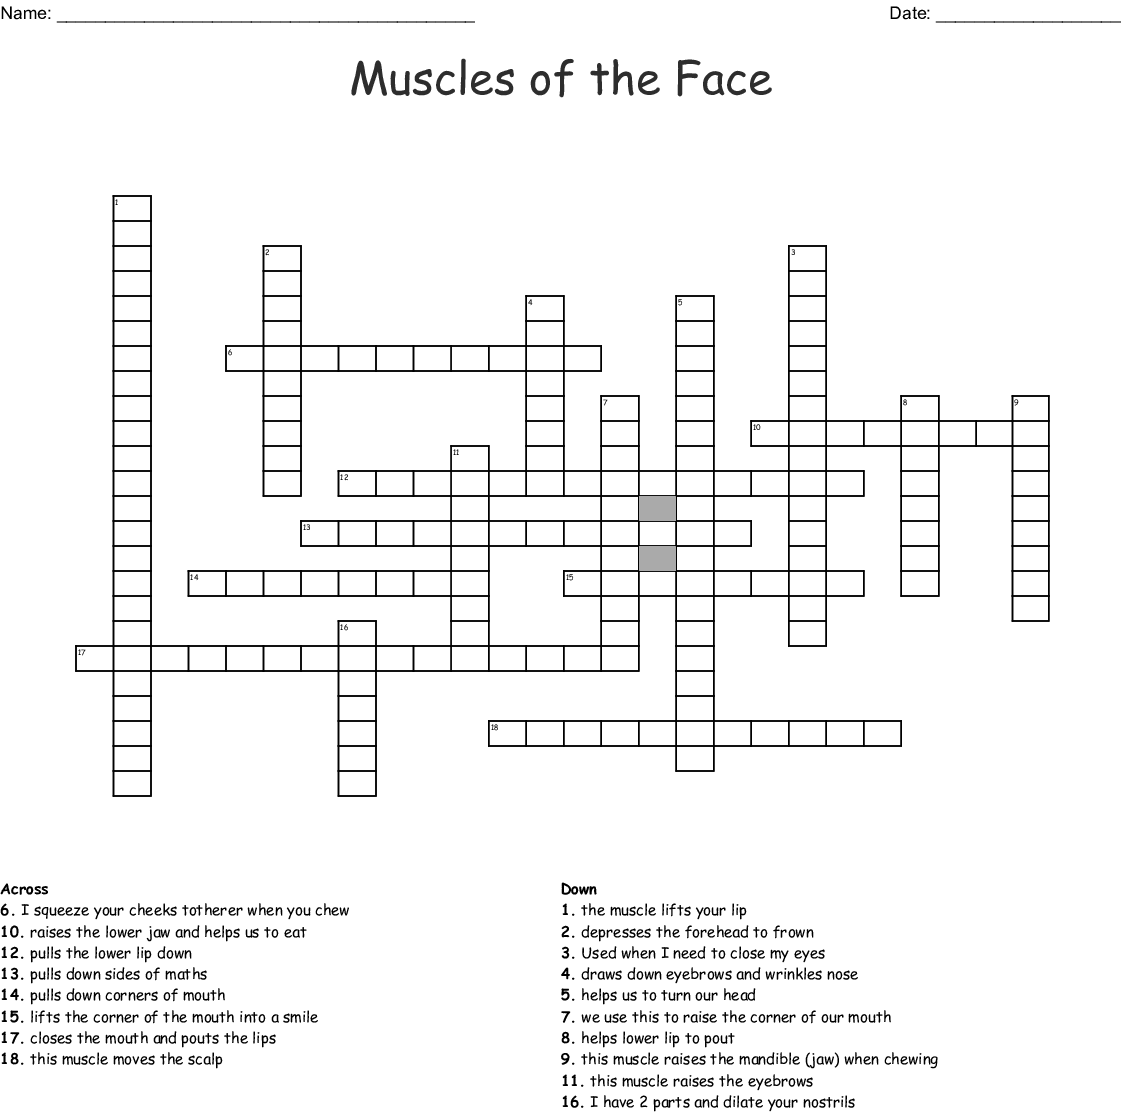 Muscles Of The Face Crossword Wordmint